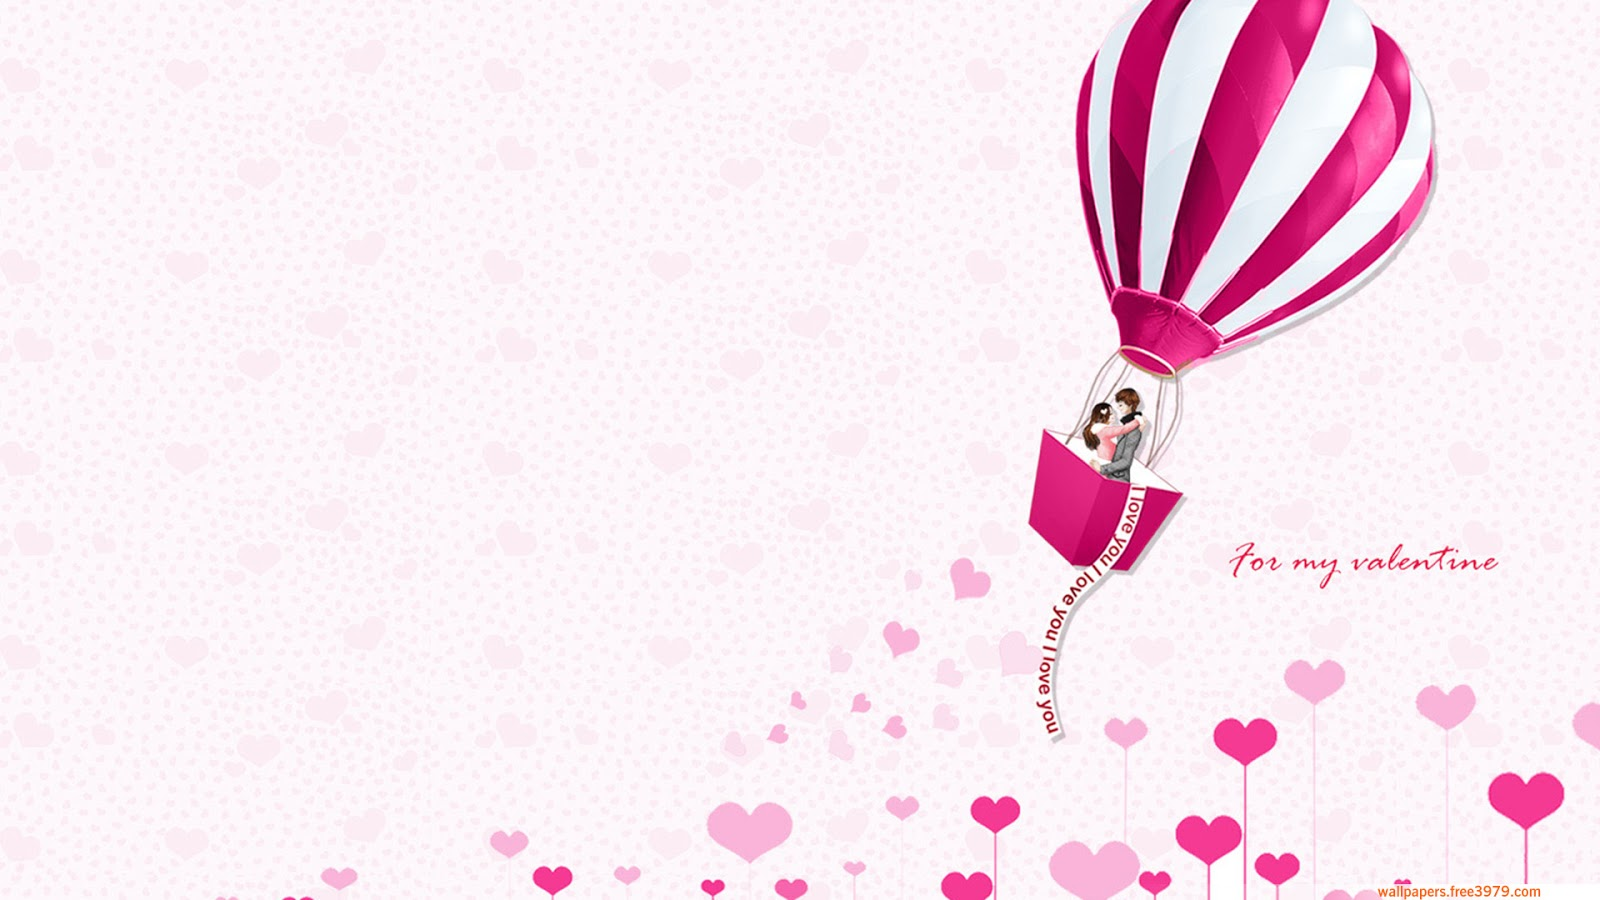 Wallpapers-Wallpaper: Cute Valentines Day Free Wallpapers